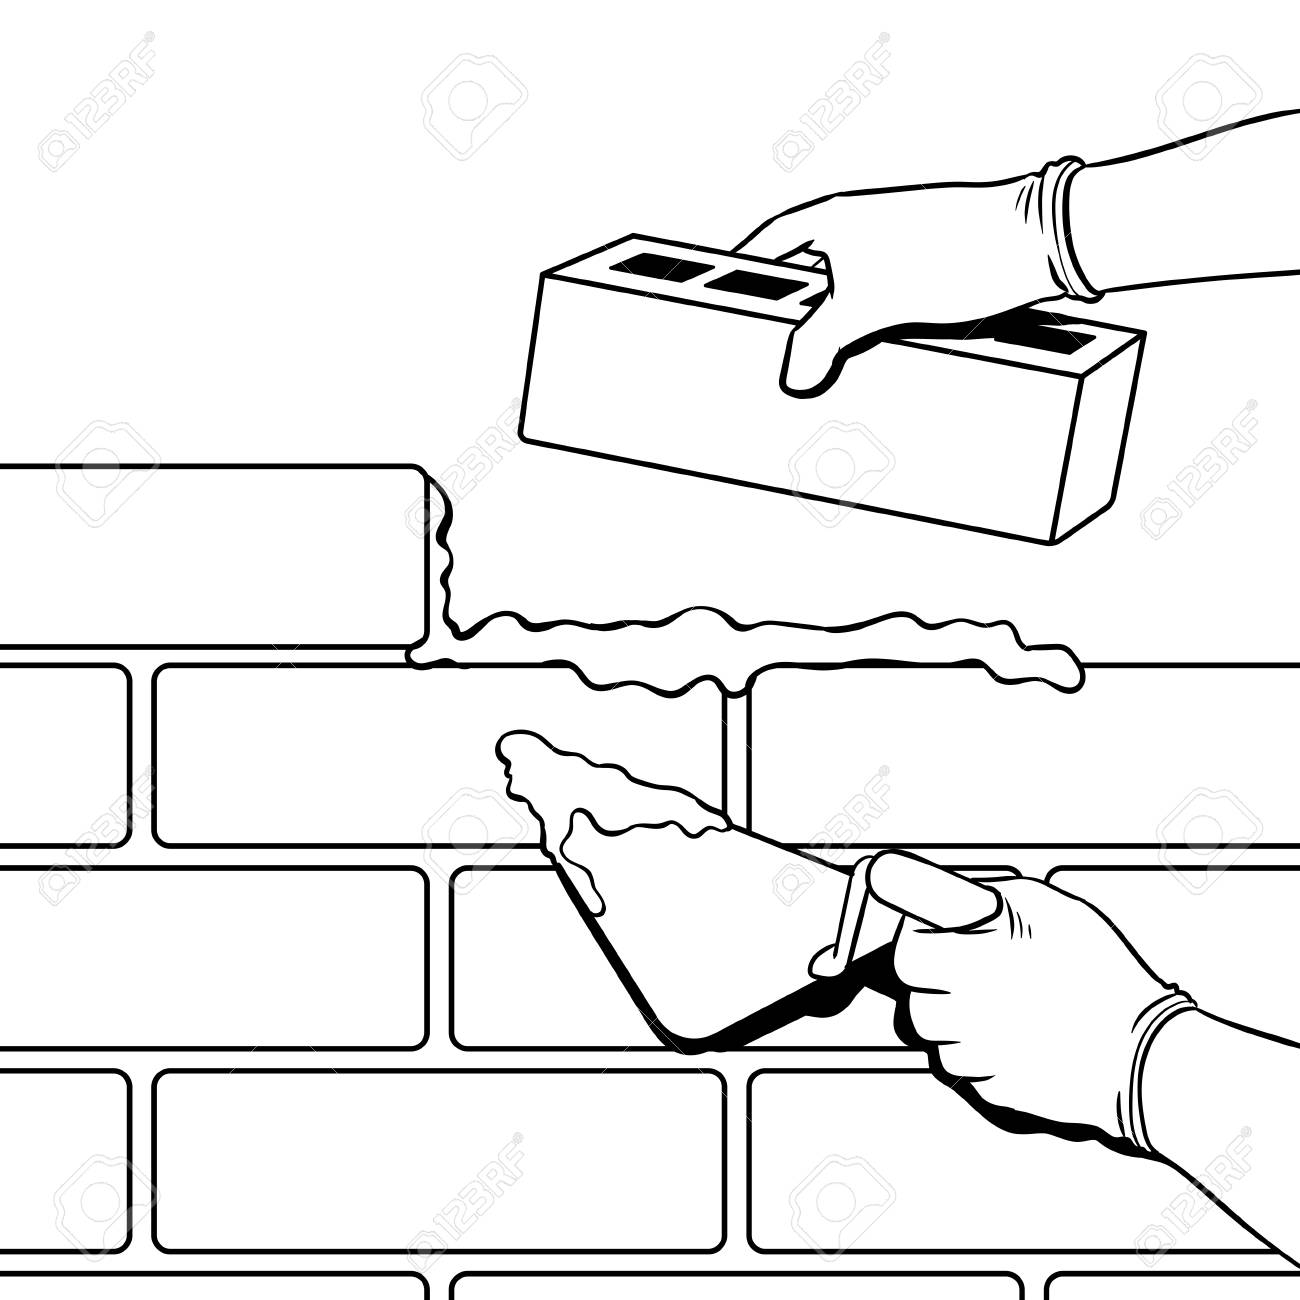 Brick wall building process coloring vector illustration. Isolated...